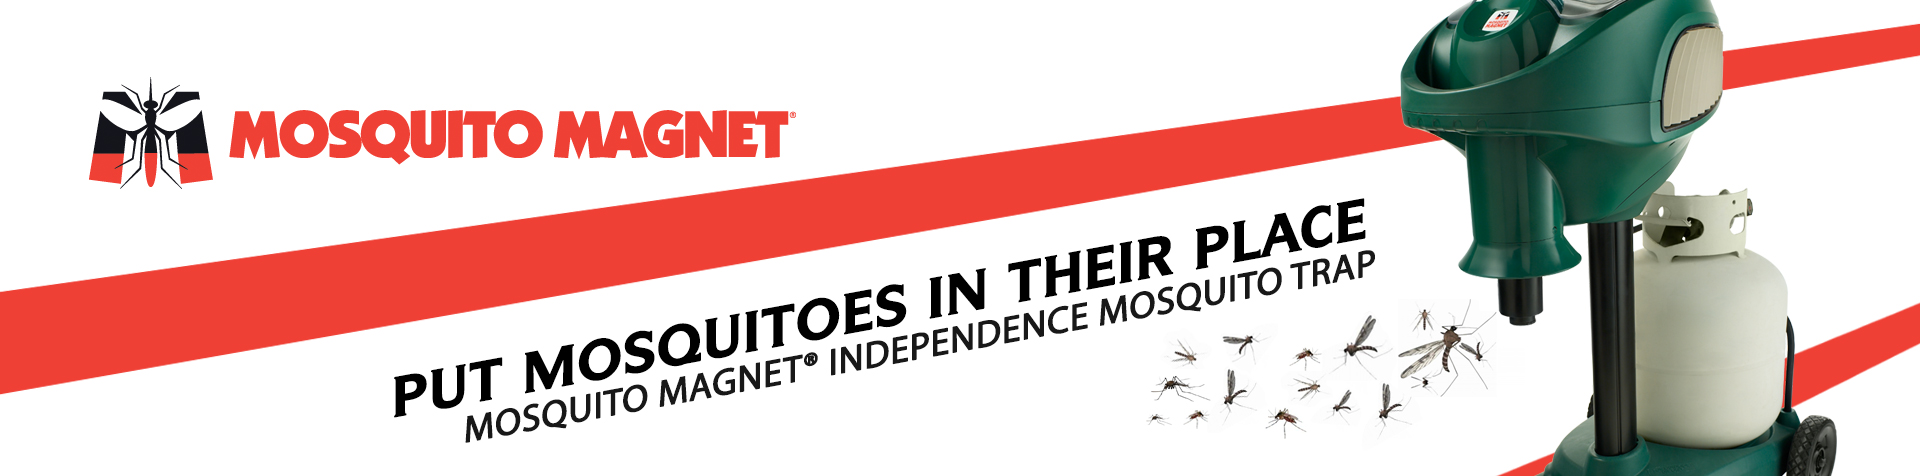 mosquito-magnet-independence_02